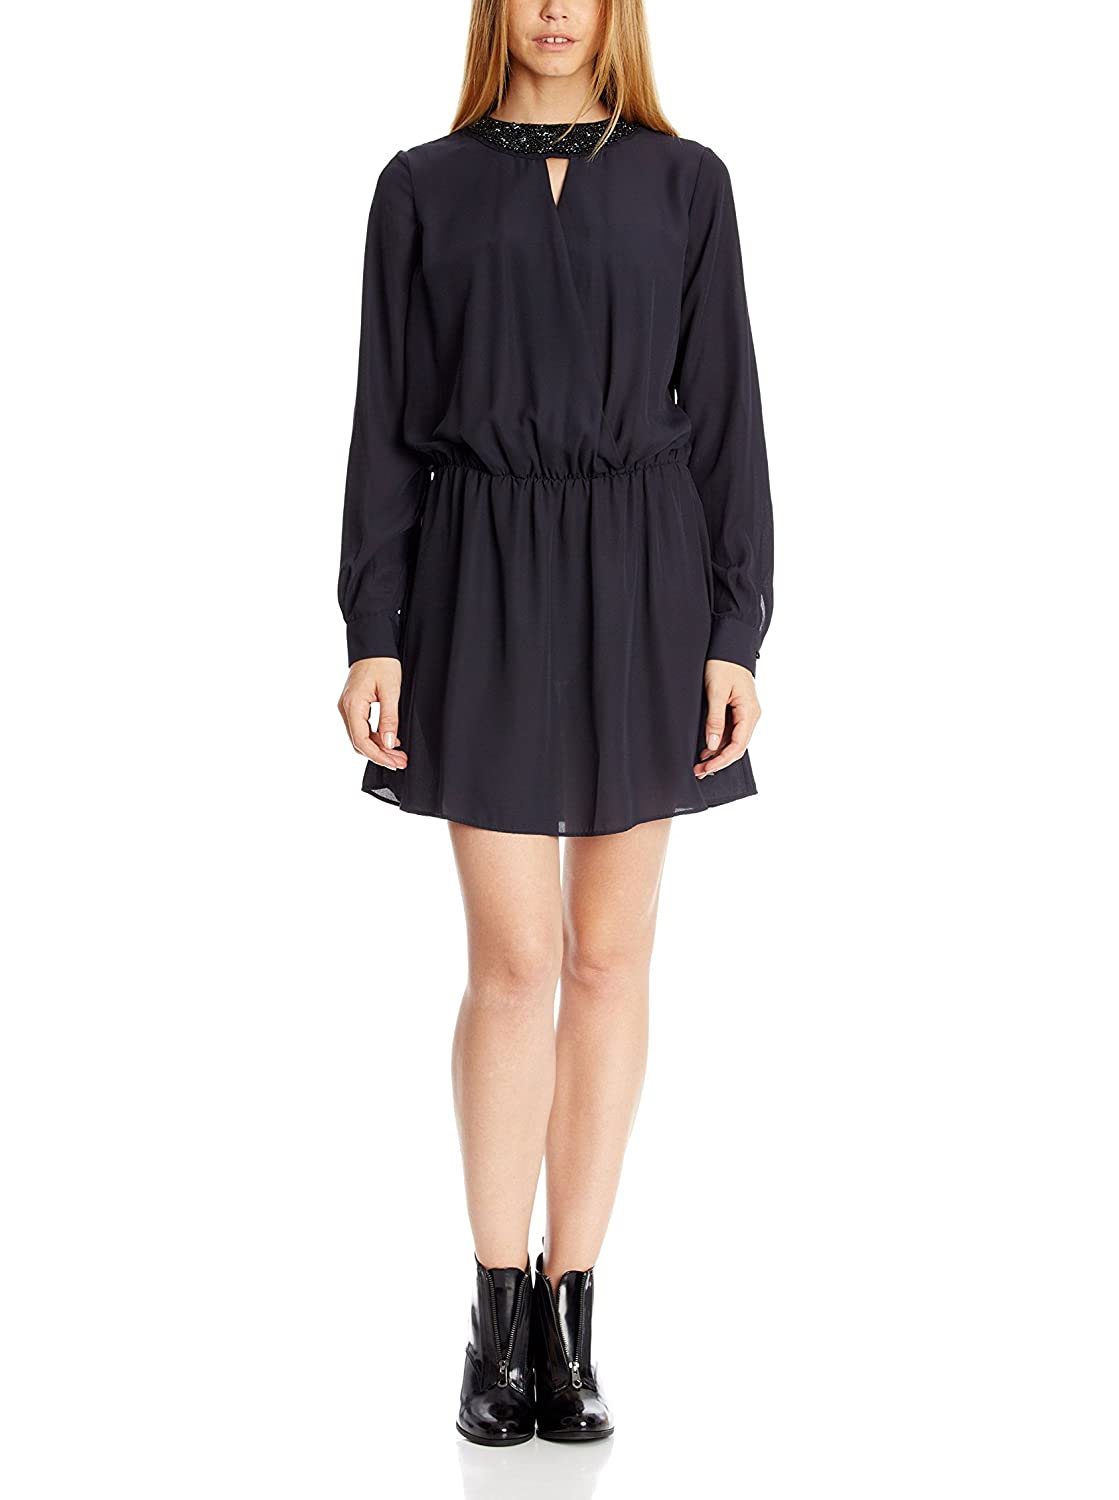 Pepe Jeans - MABEL - Woman - TL - Black